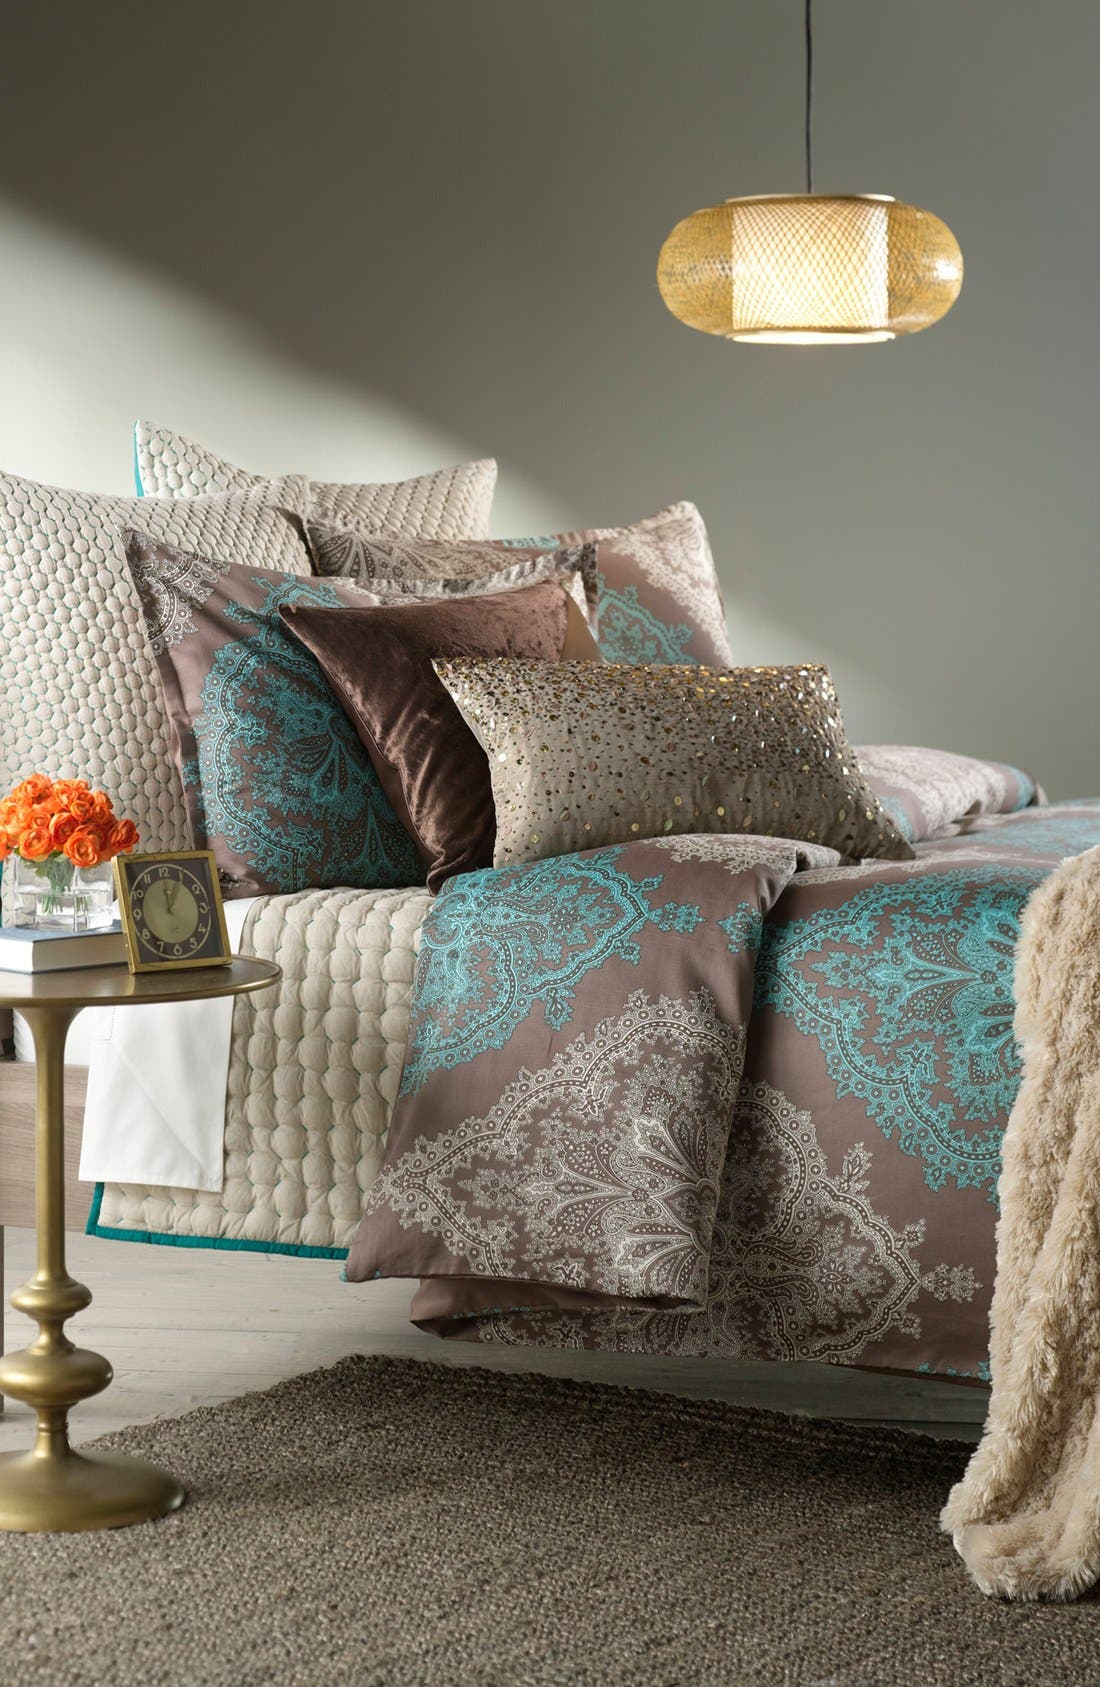 Alternate Image 2  - Nordstrom at Home 'Shaggy' Plush Throw Blanket